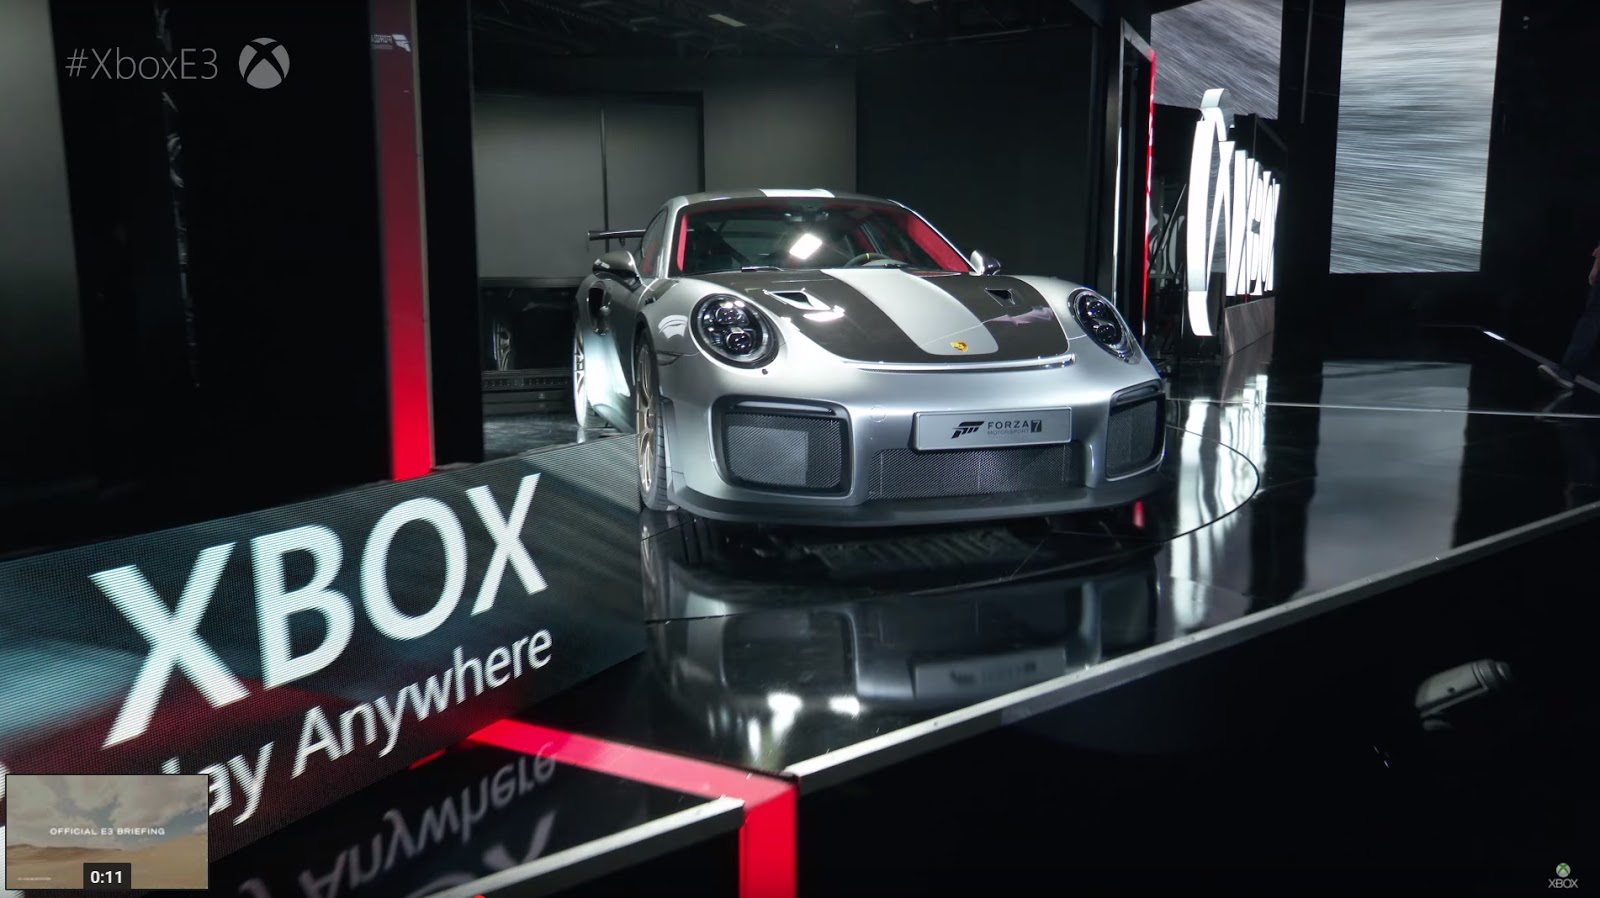 2018 porsche 911 gt2 rs unveiled at e3 gaming convention trending on net. Black Bedroom Furniture Sets. Home Design Ideas